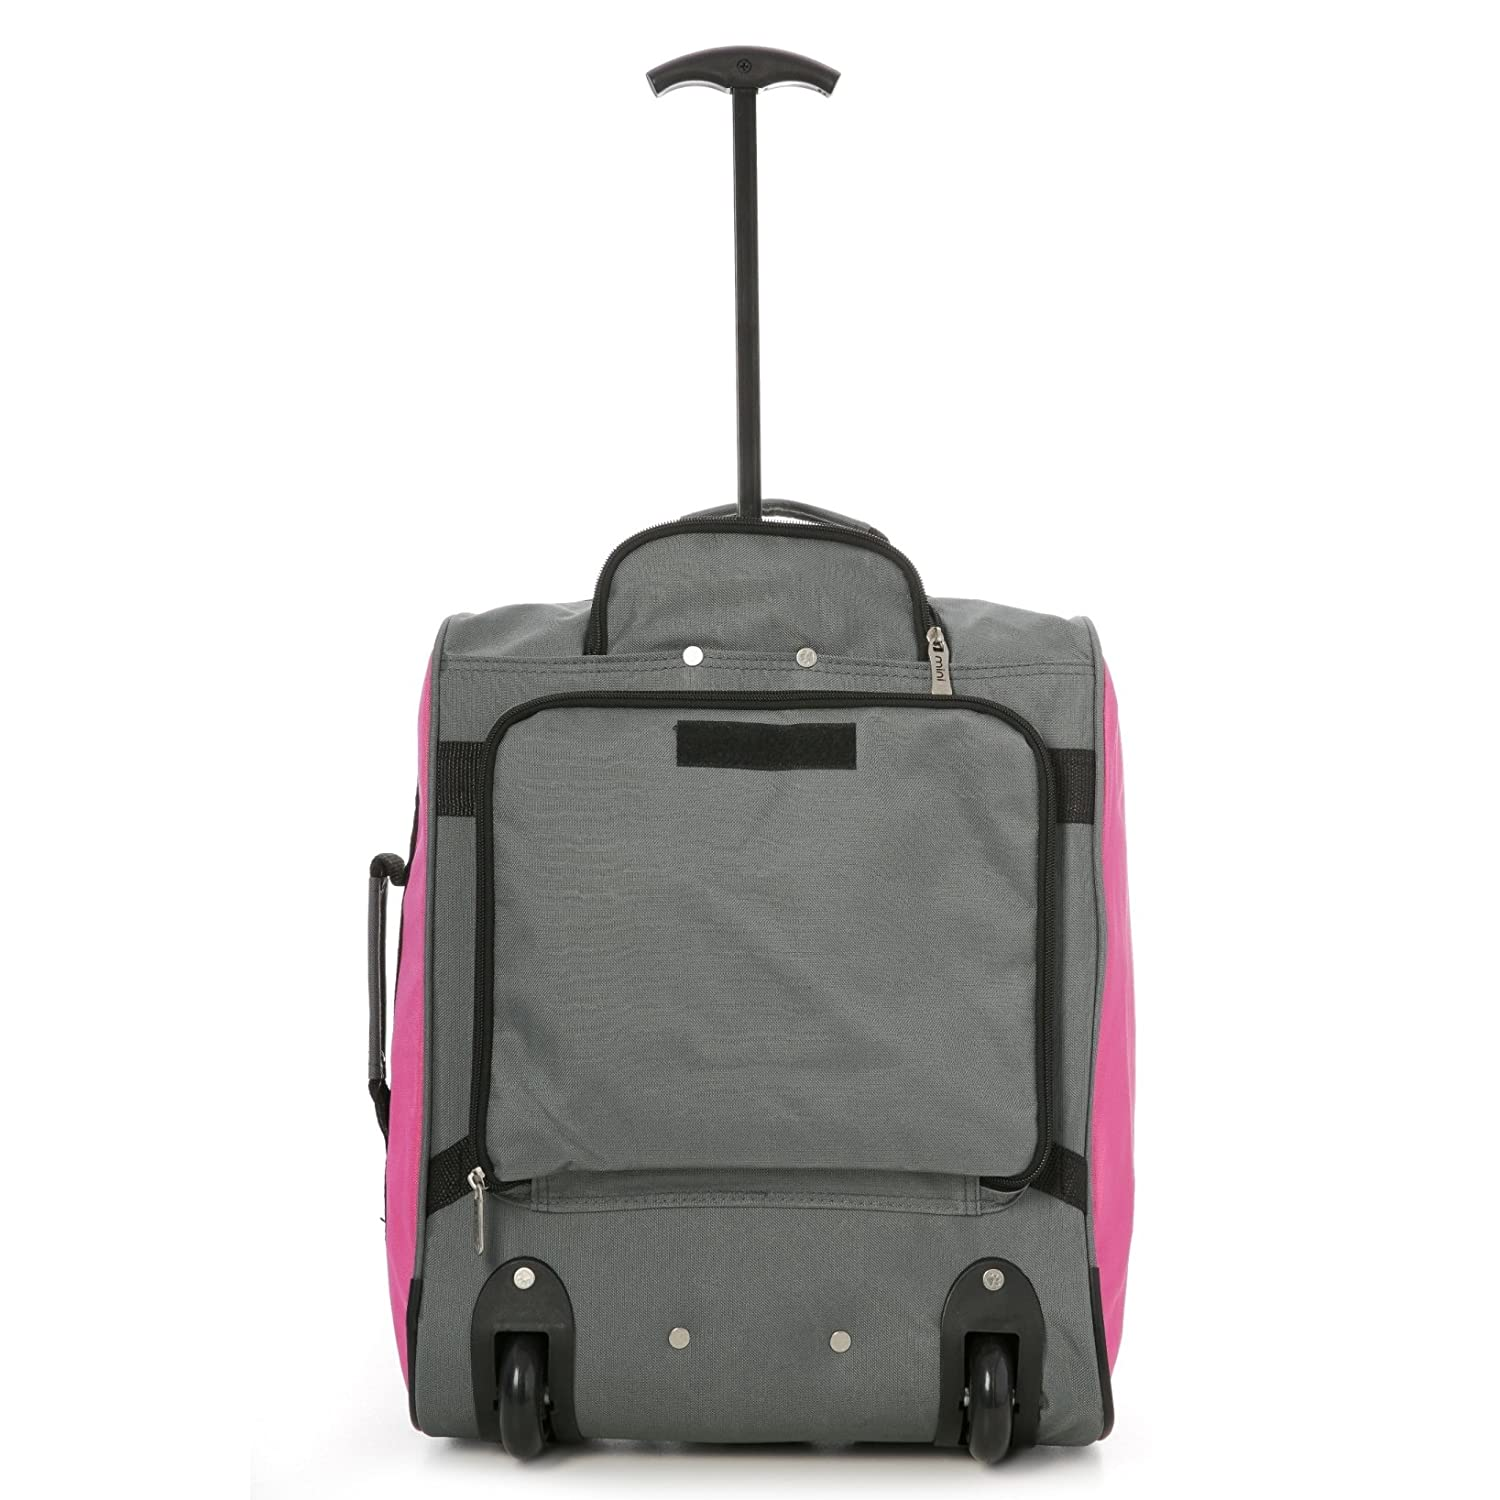 minimax kinder kinder handgep ck fortf hren trolley koffer mit rucksack. Black Bedroom Furniture Sets. Home Design Ideas